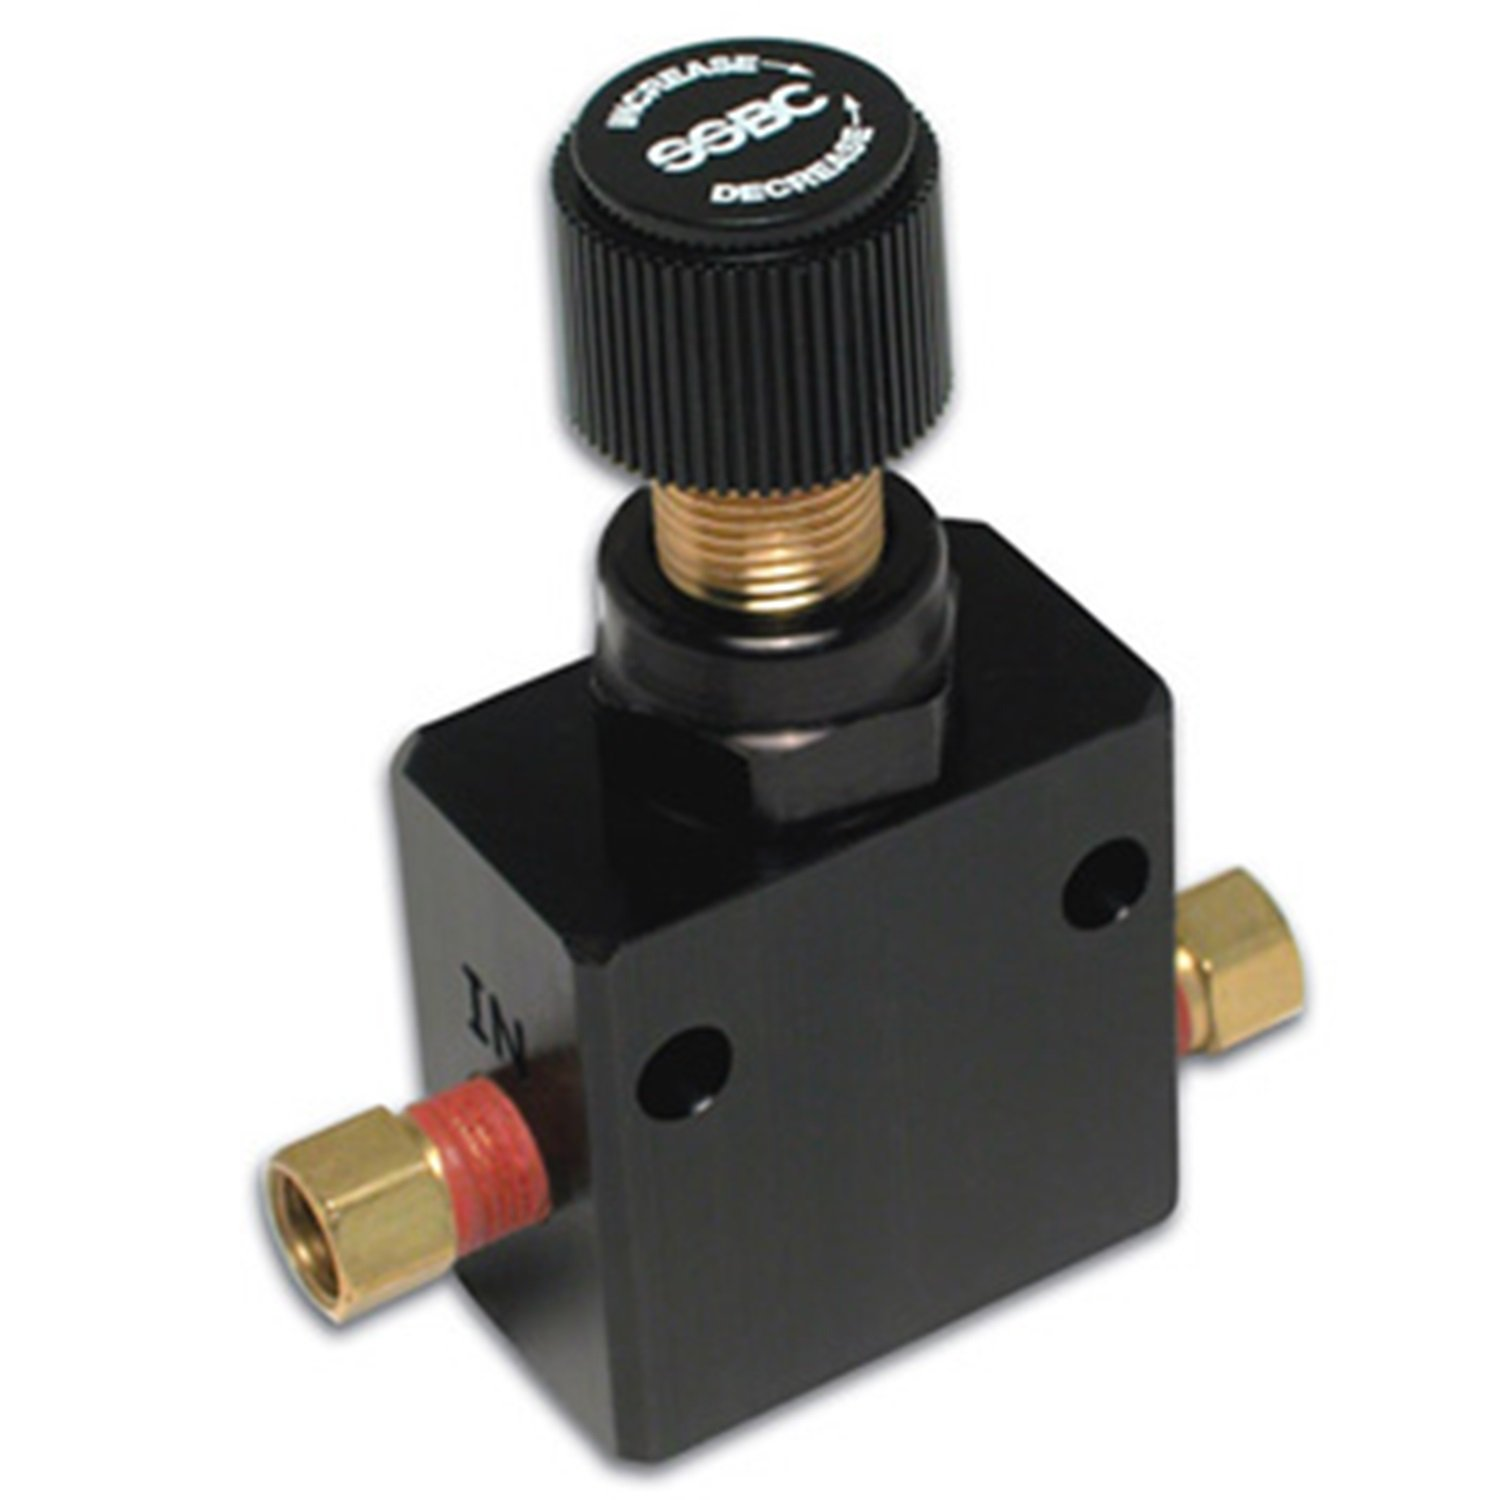 SSBC A0707-1 Black Anodized Adjustable Proportioning Valve